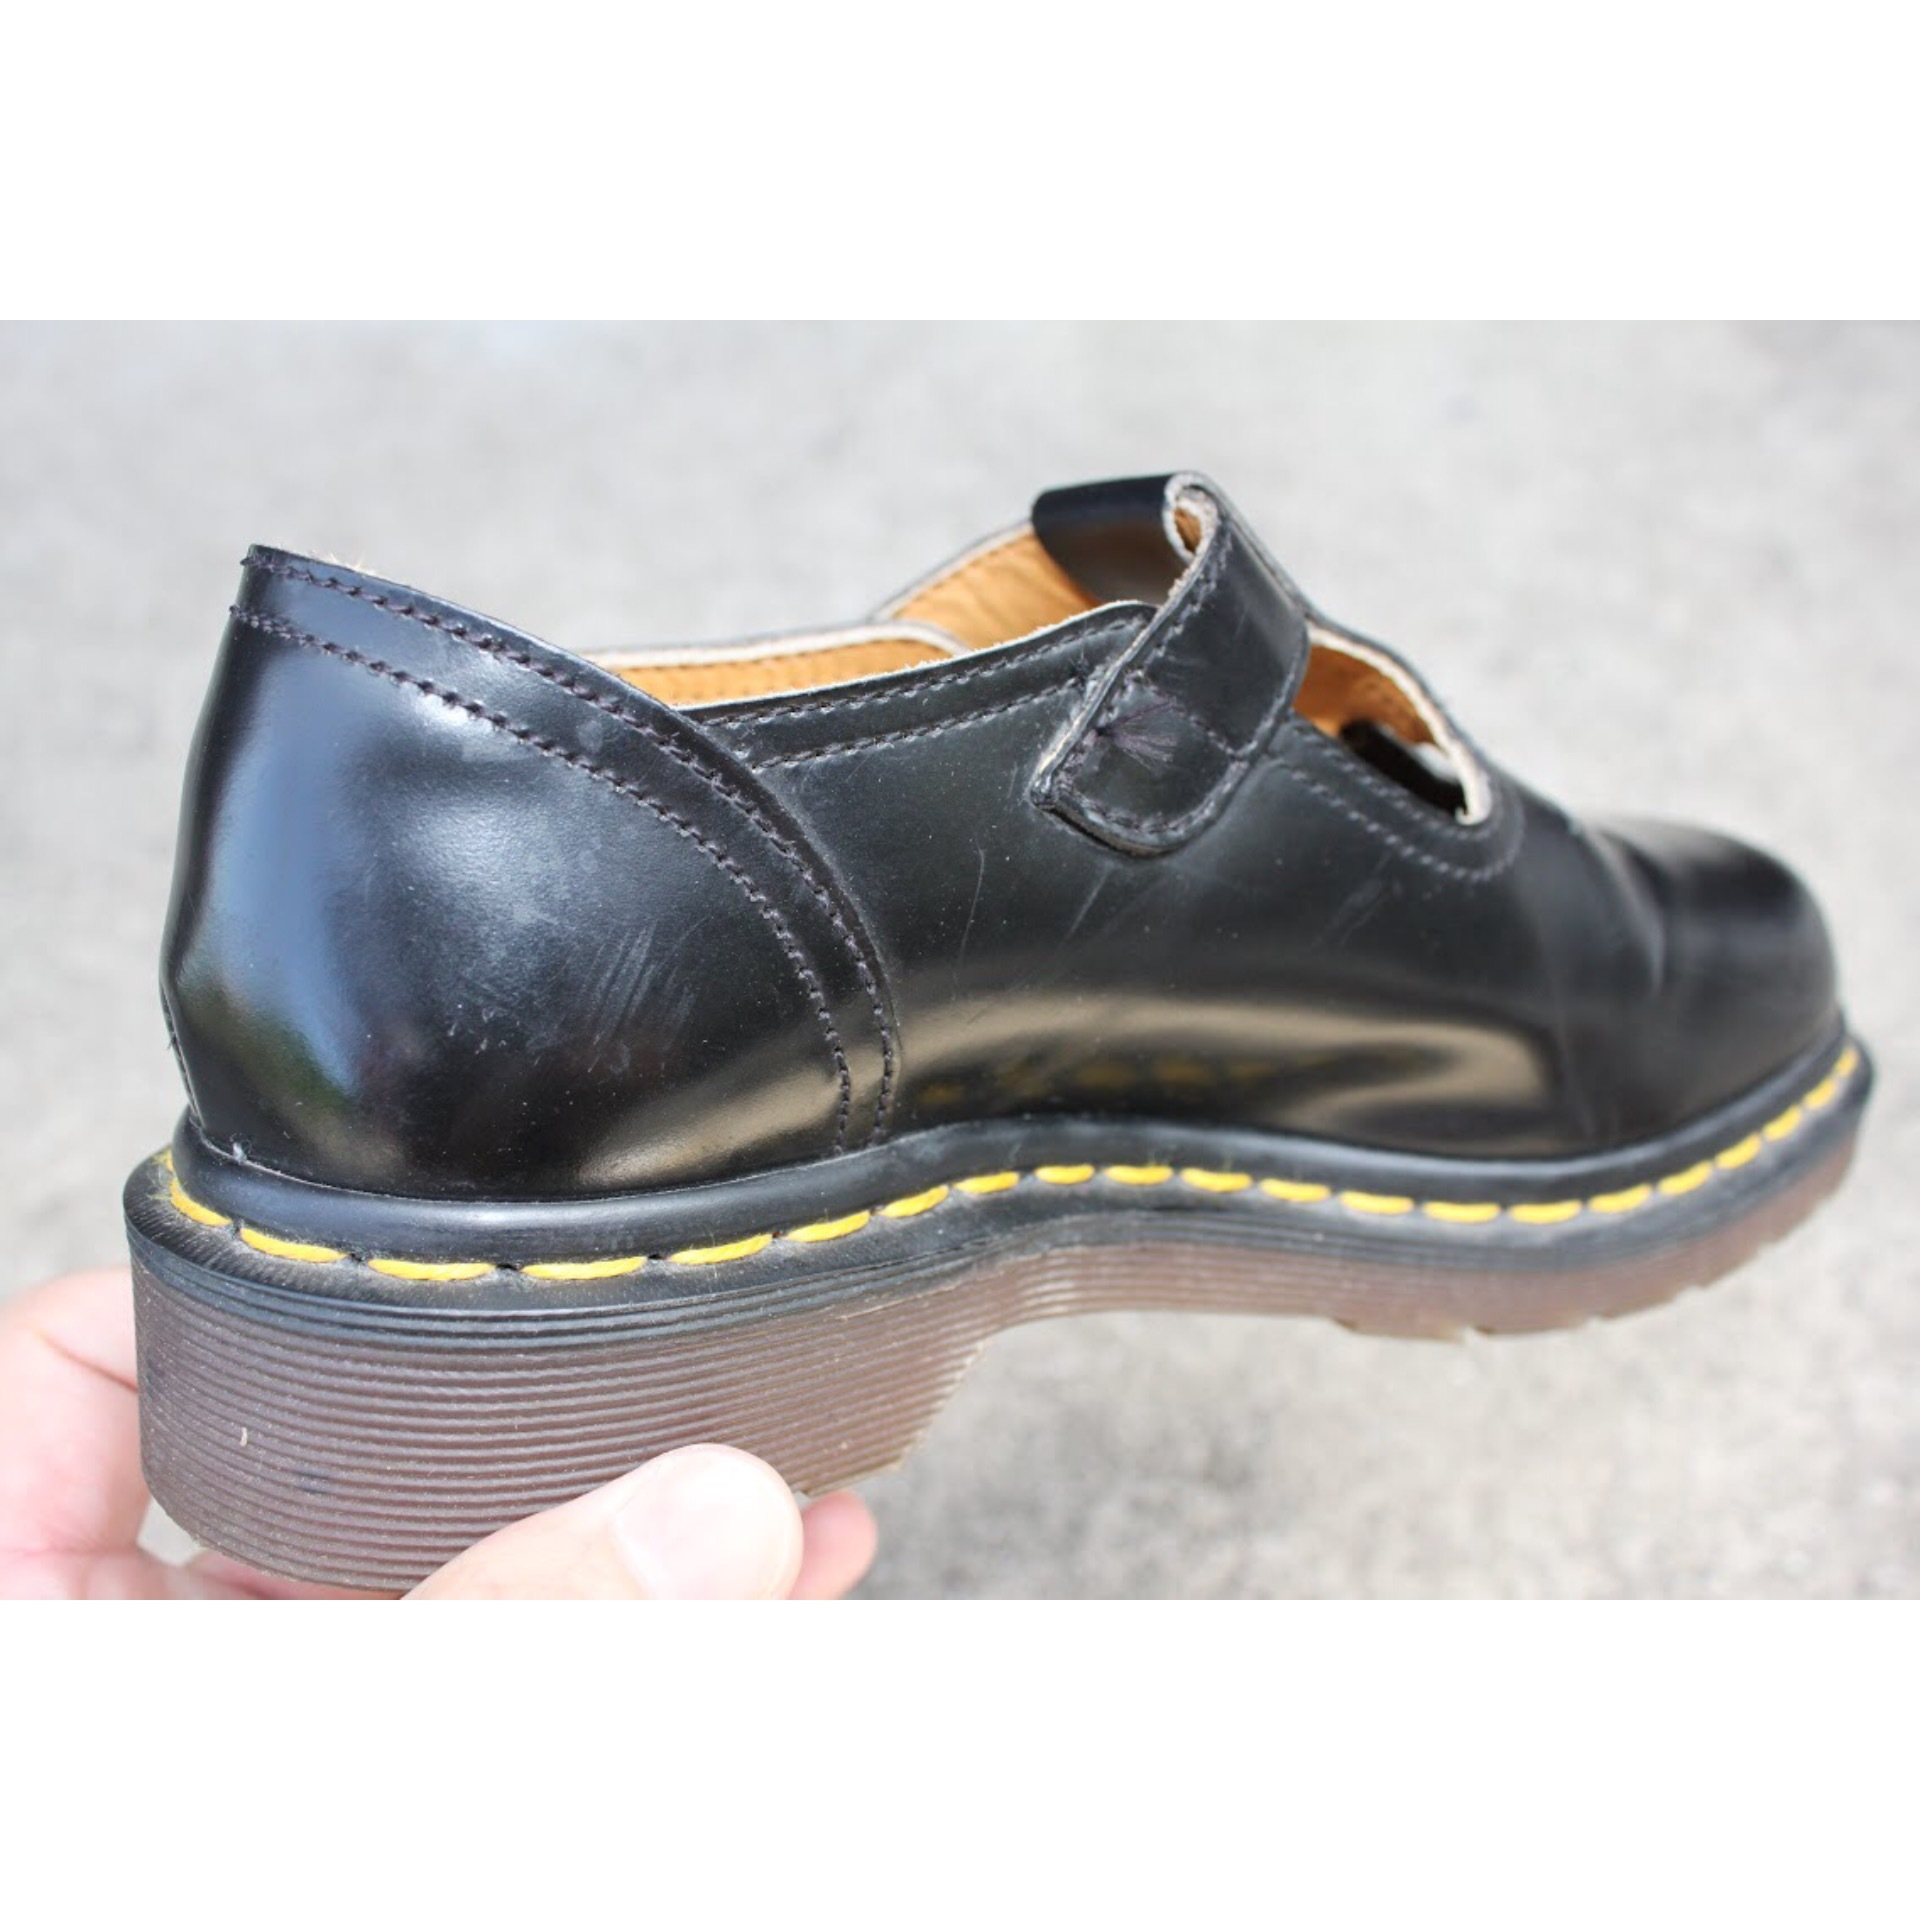 Dr. Martins T bar shoes Made in England 3